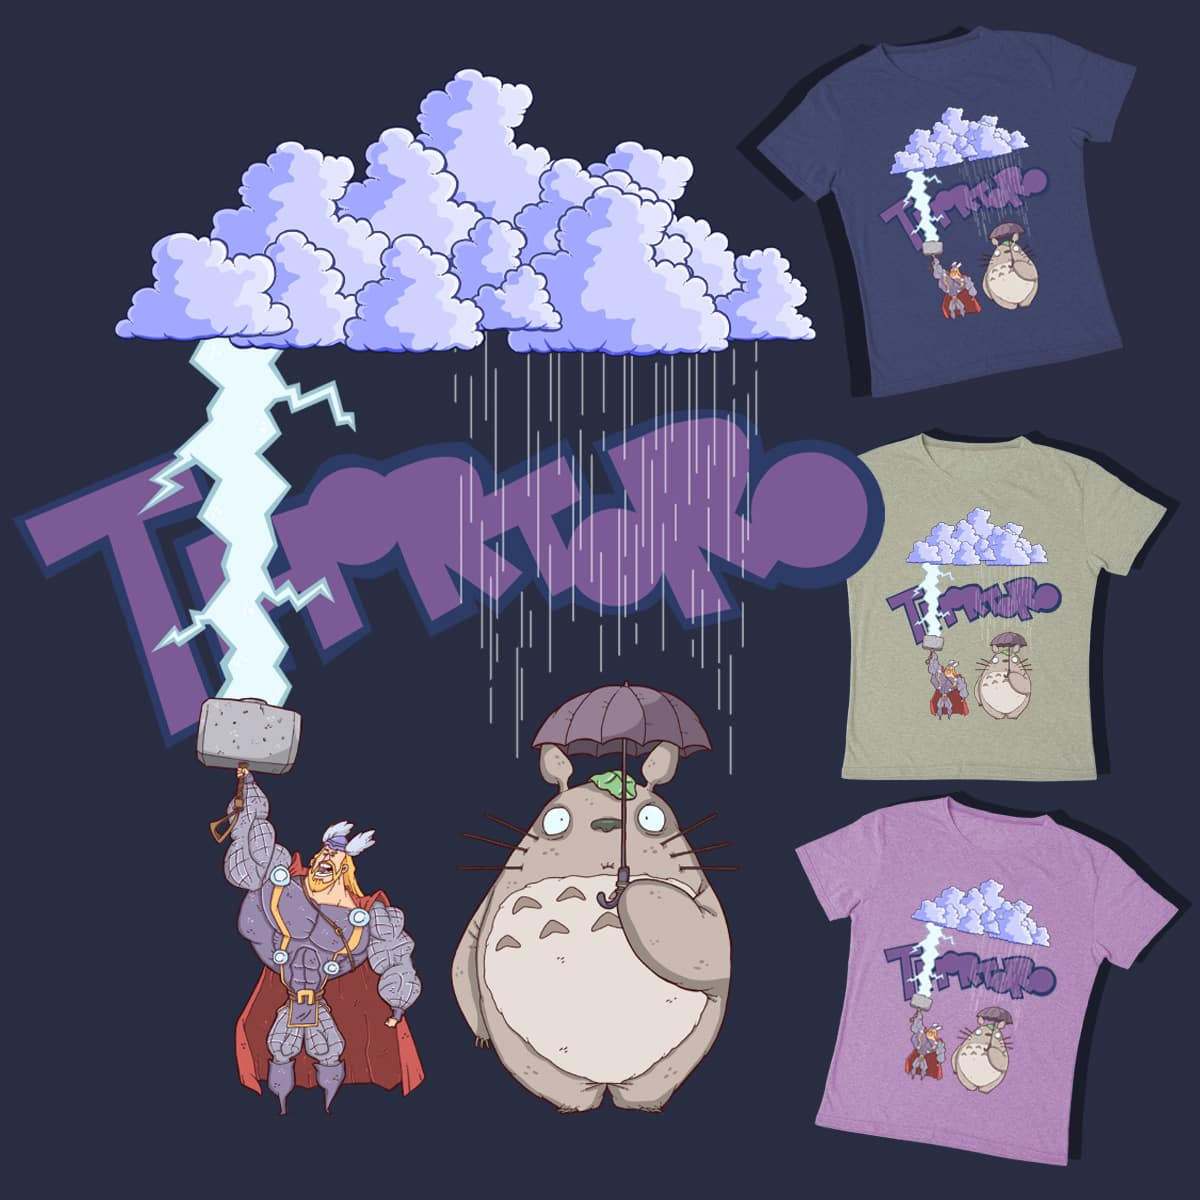 Thortoro by lost-angel-less on Threadless